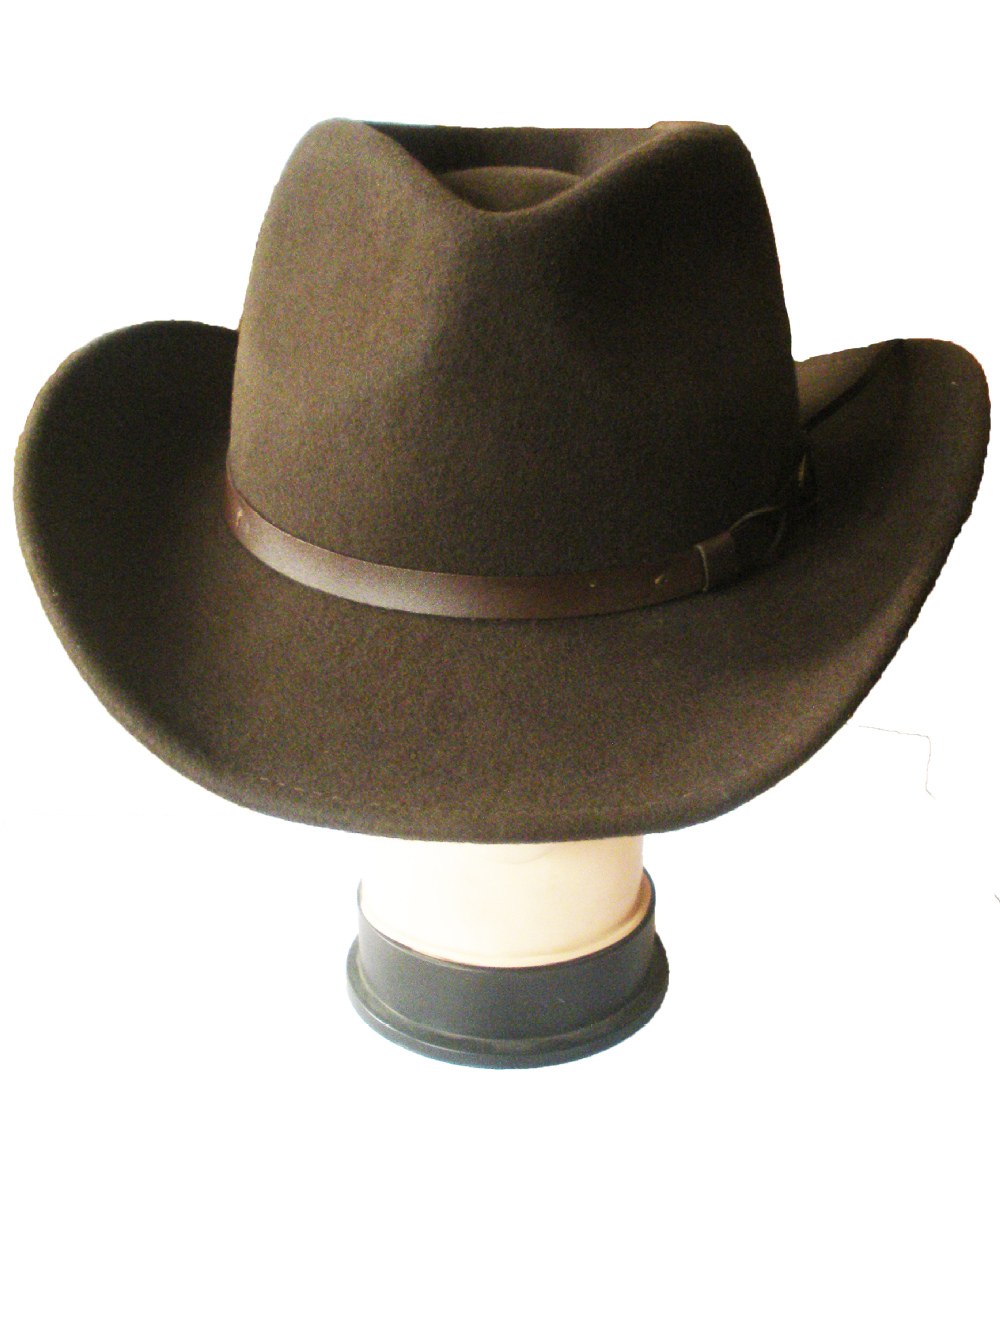 New Style Fashion Brown Felt Cowboy Hats For Men And